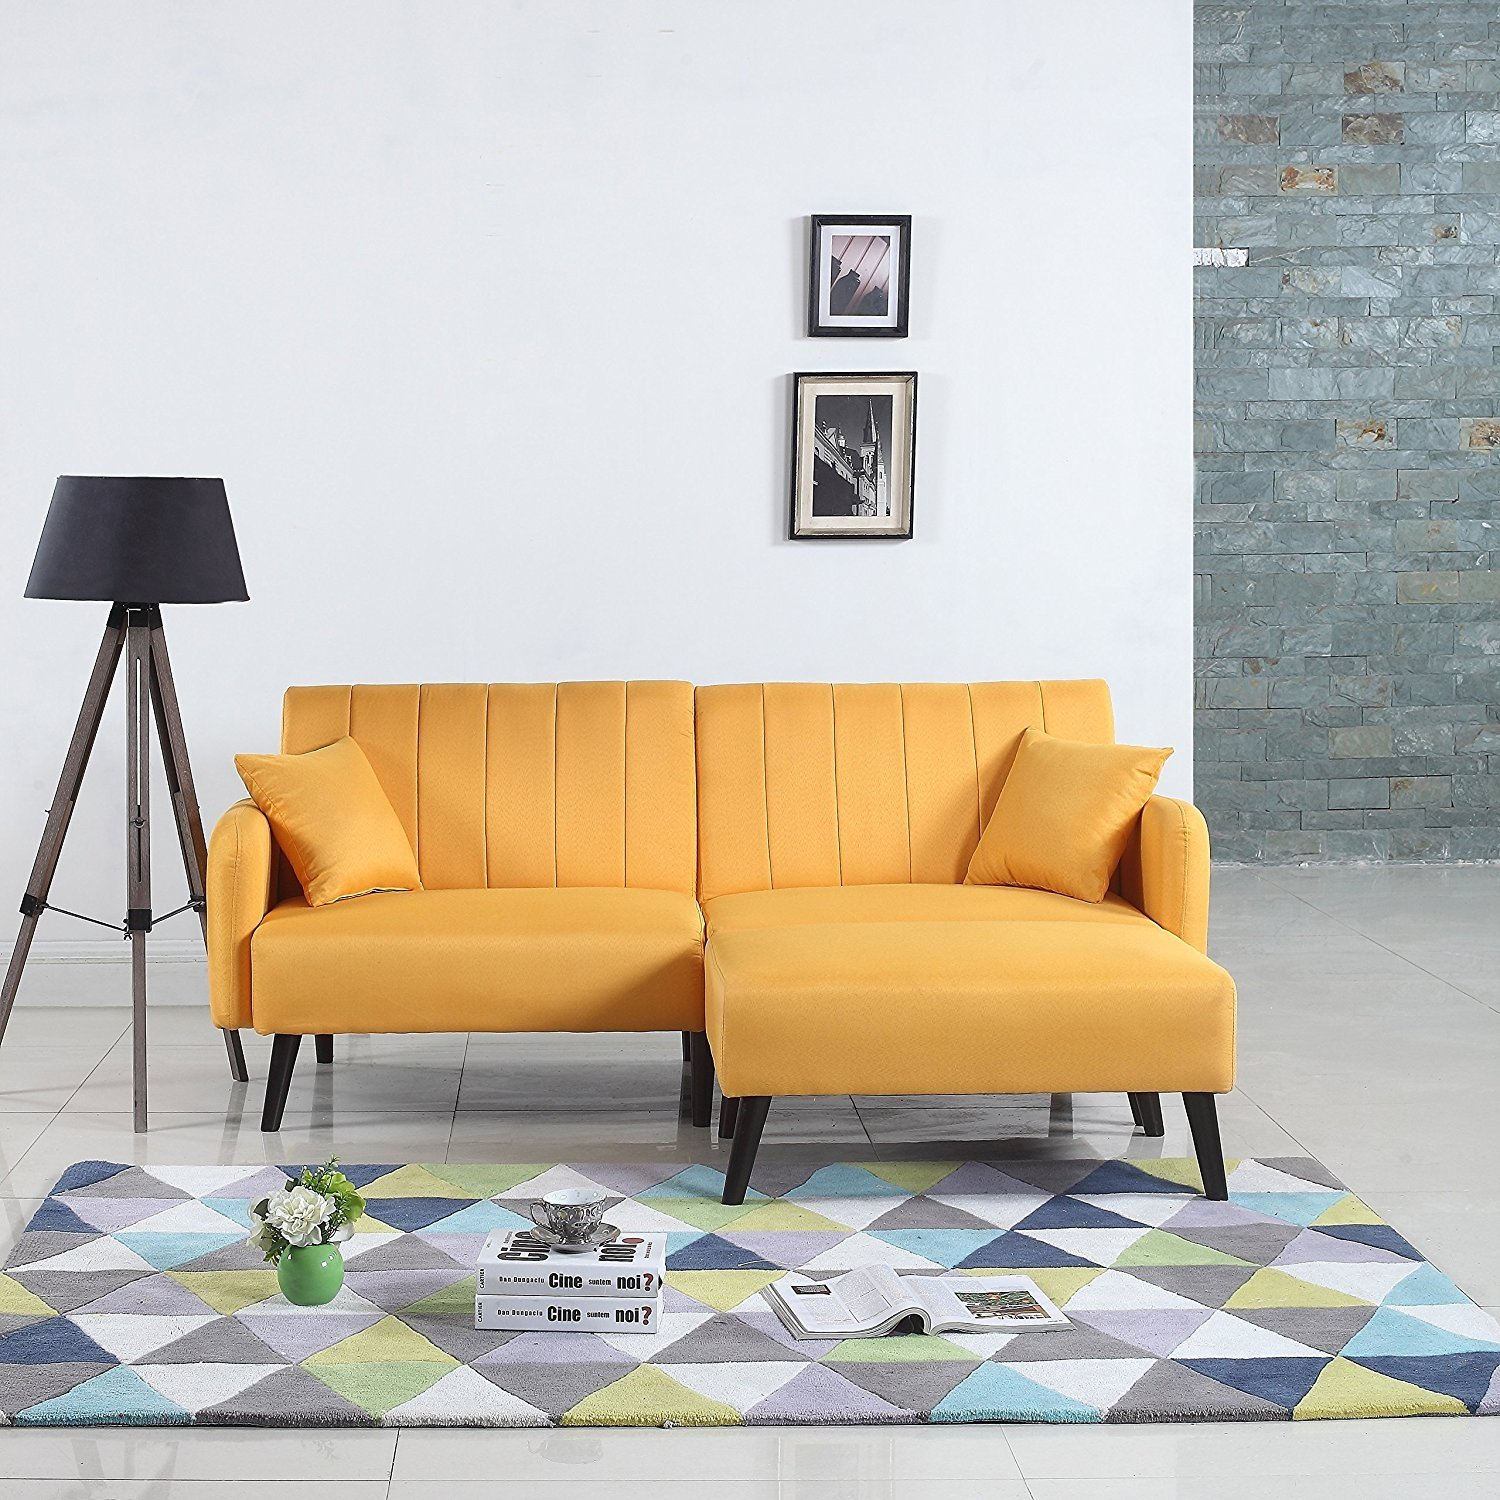 new styles e36ae 1a50d Details about Mid-Century Modern Yellow Fabric Futon Sofa Bed, Living Room  Sleeper Couch